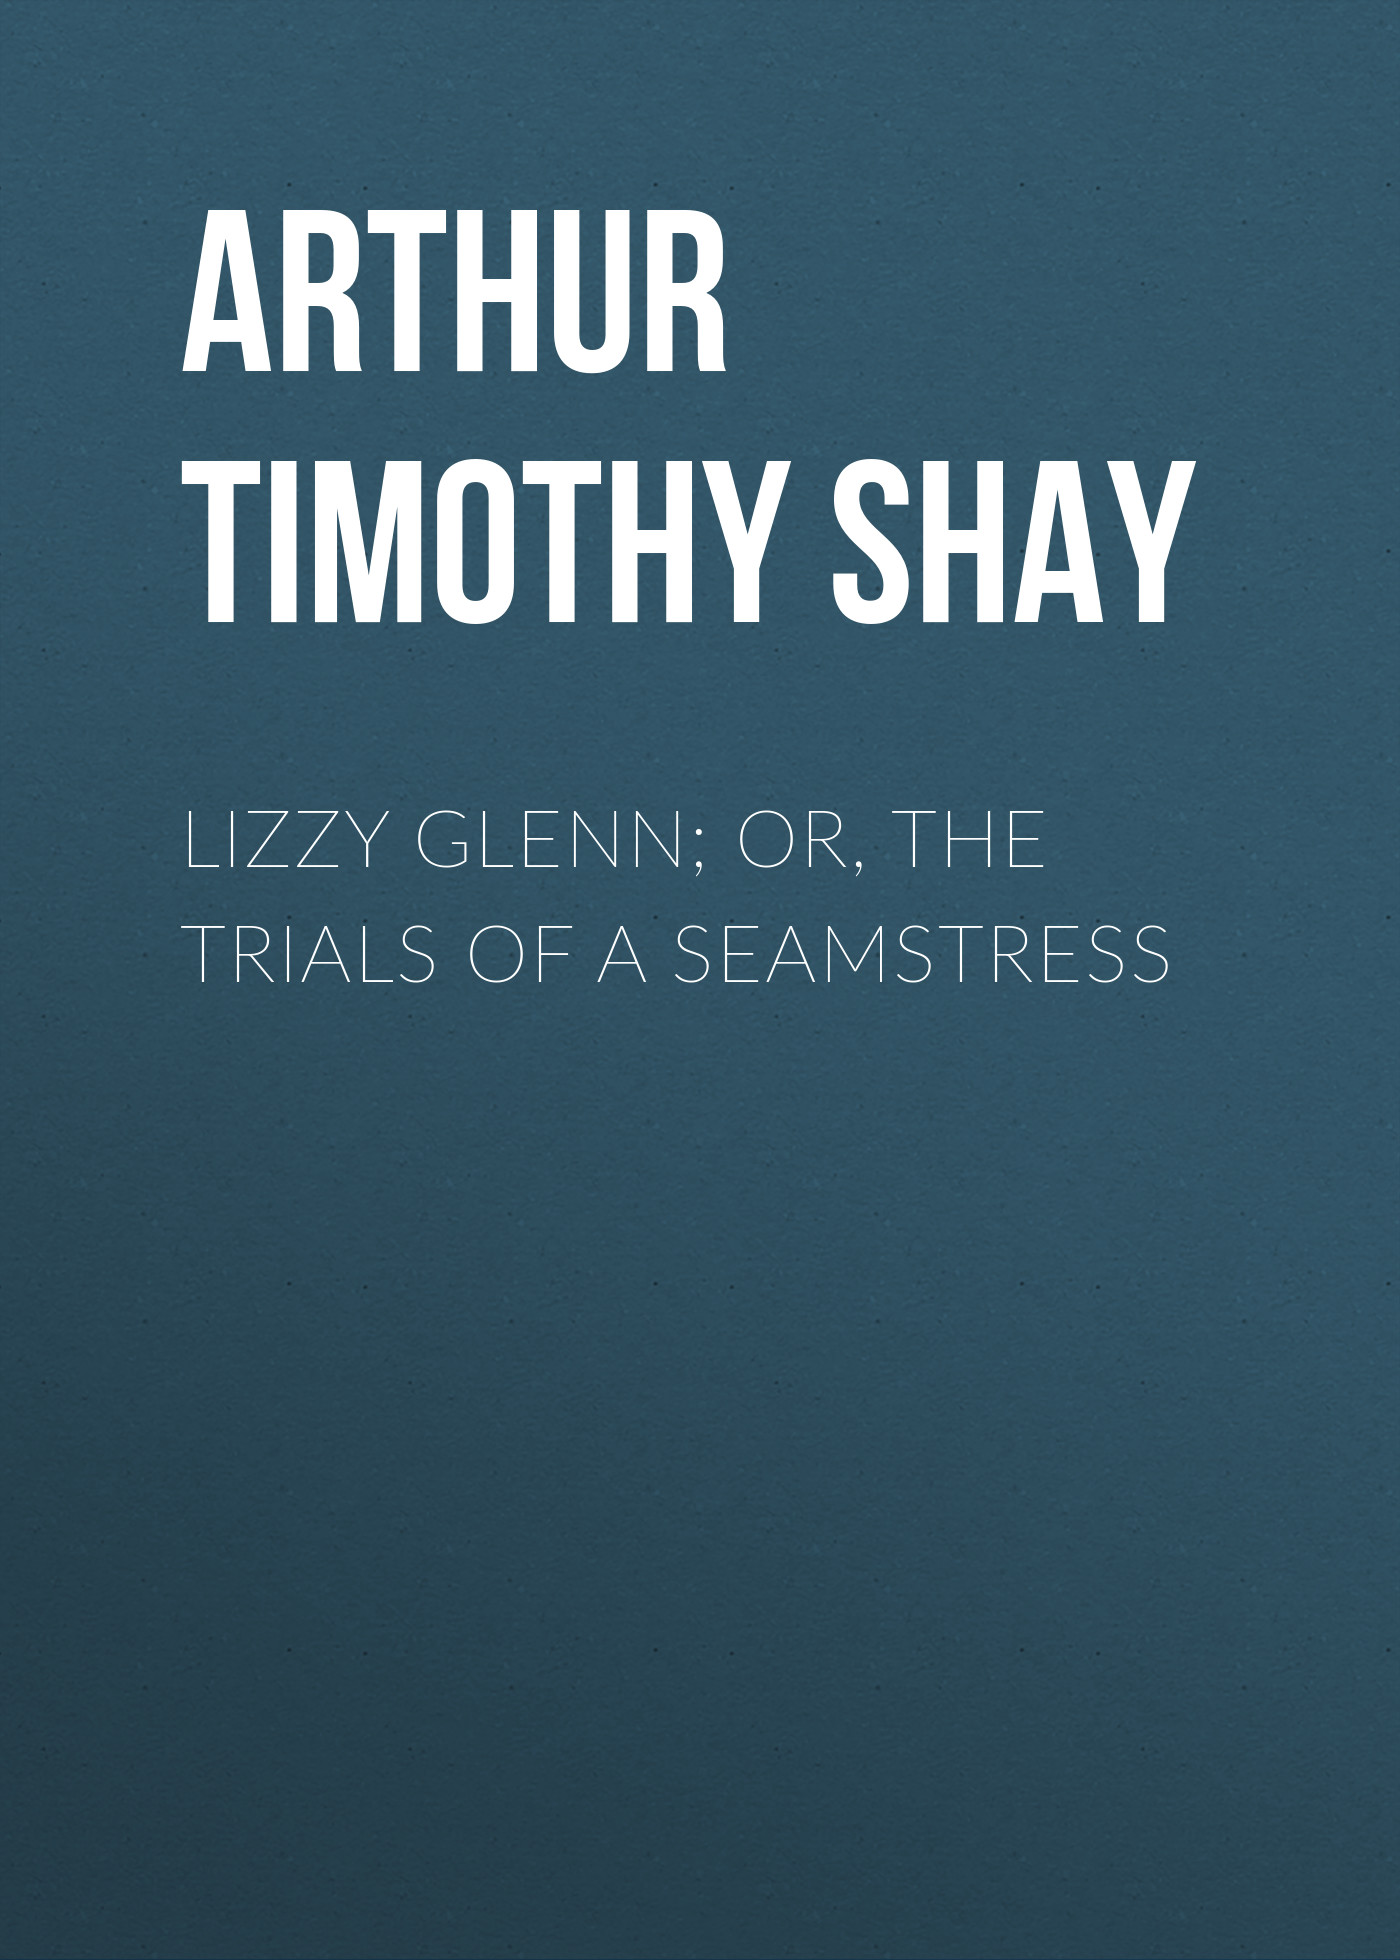 Arthur Timothy Shay Lizzy Glenn; Or, The Trials of a Seamstress arthur timothy shay woman s trials or tales and sketches from the life around us